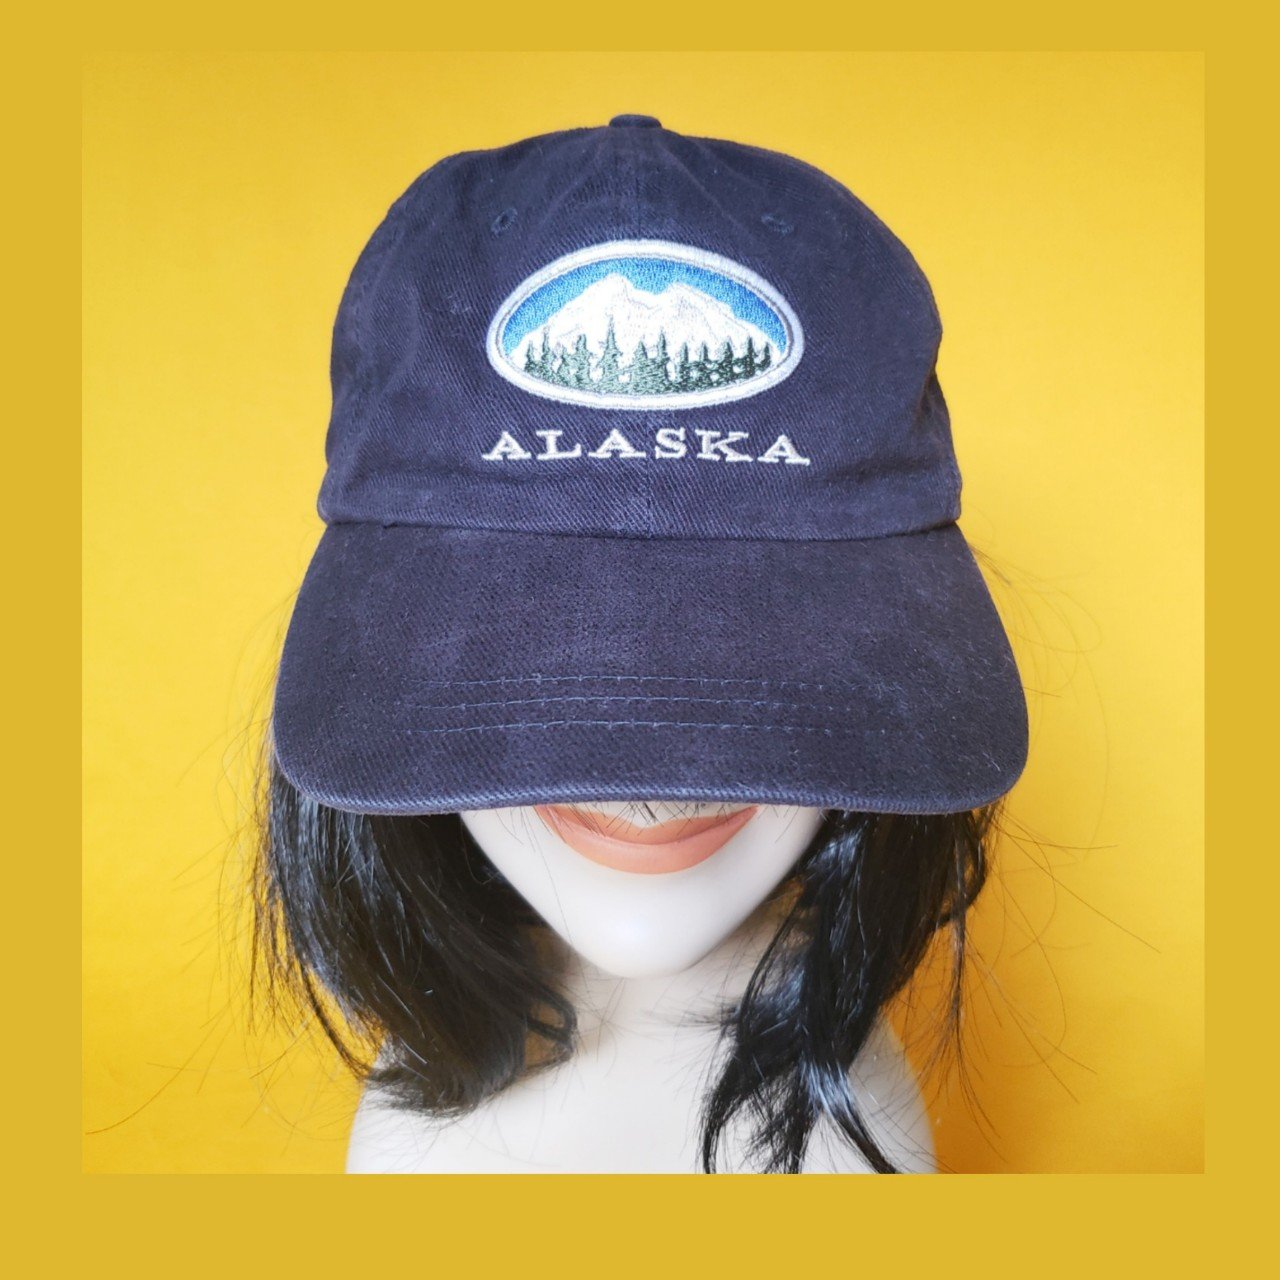 Alaska Dad Hat  8.50 Plus Shipping Velcro Adjustable - Depop f03a14741c2